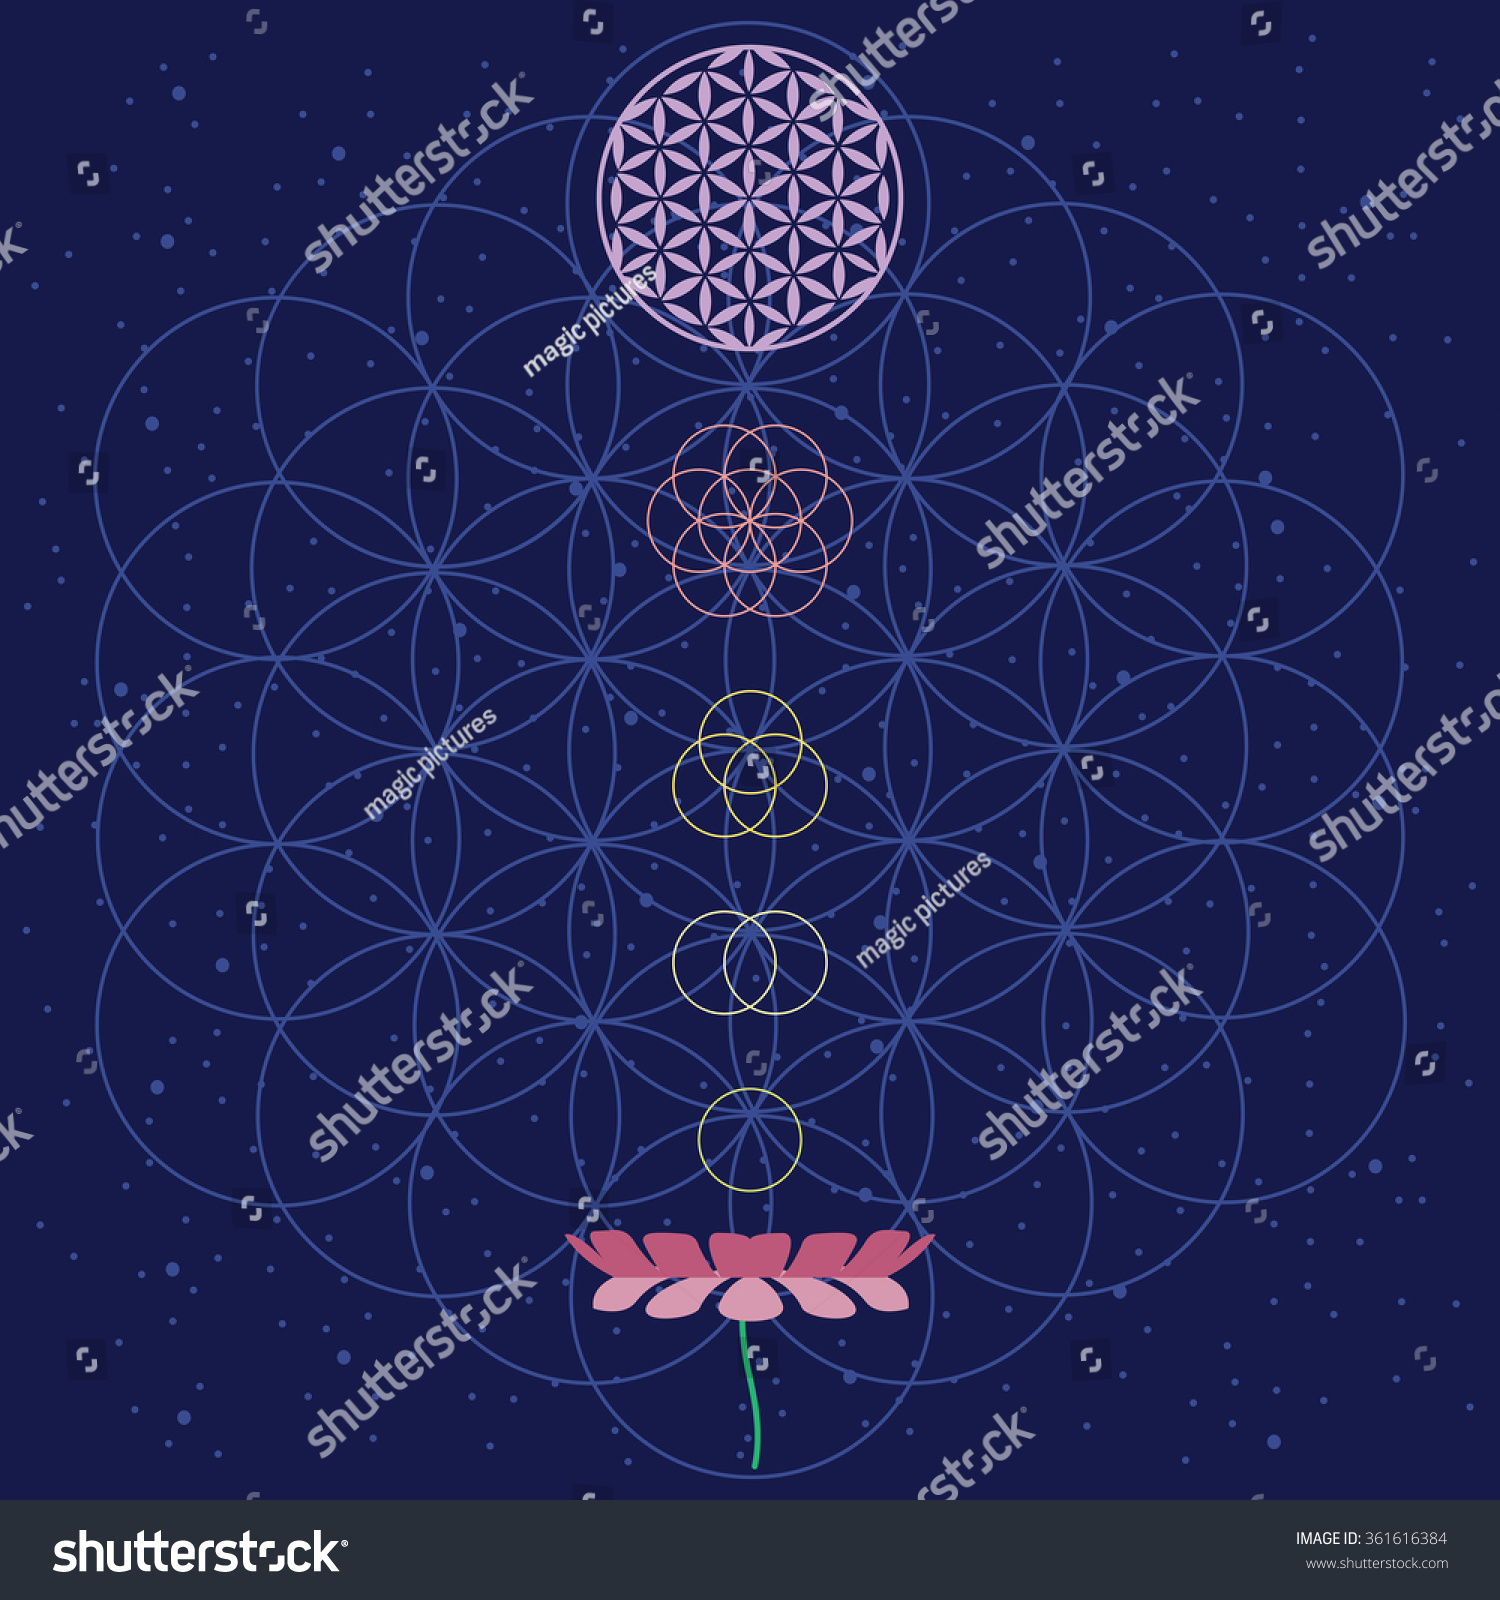 Vector Illustration Flower Life Lotus Cosmos Stock Vector Royalty